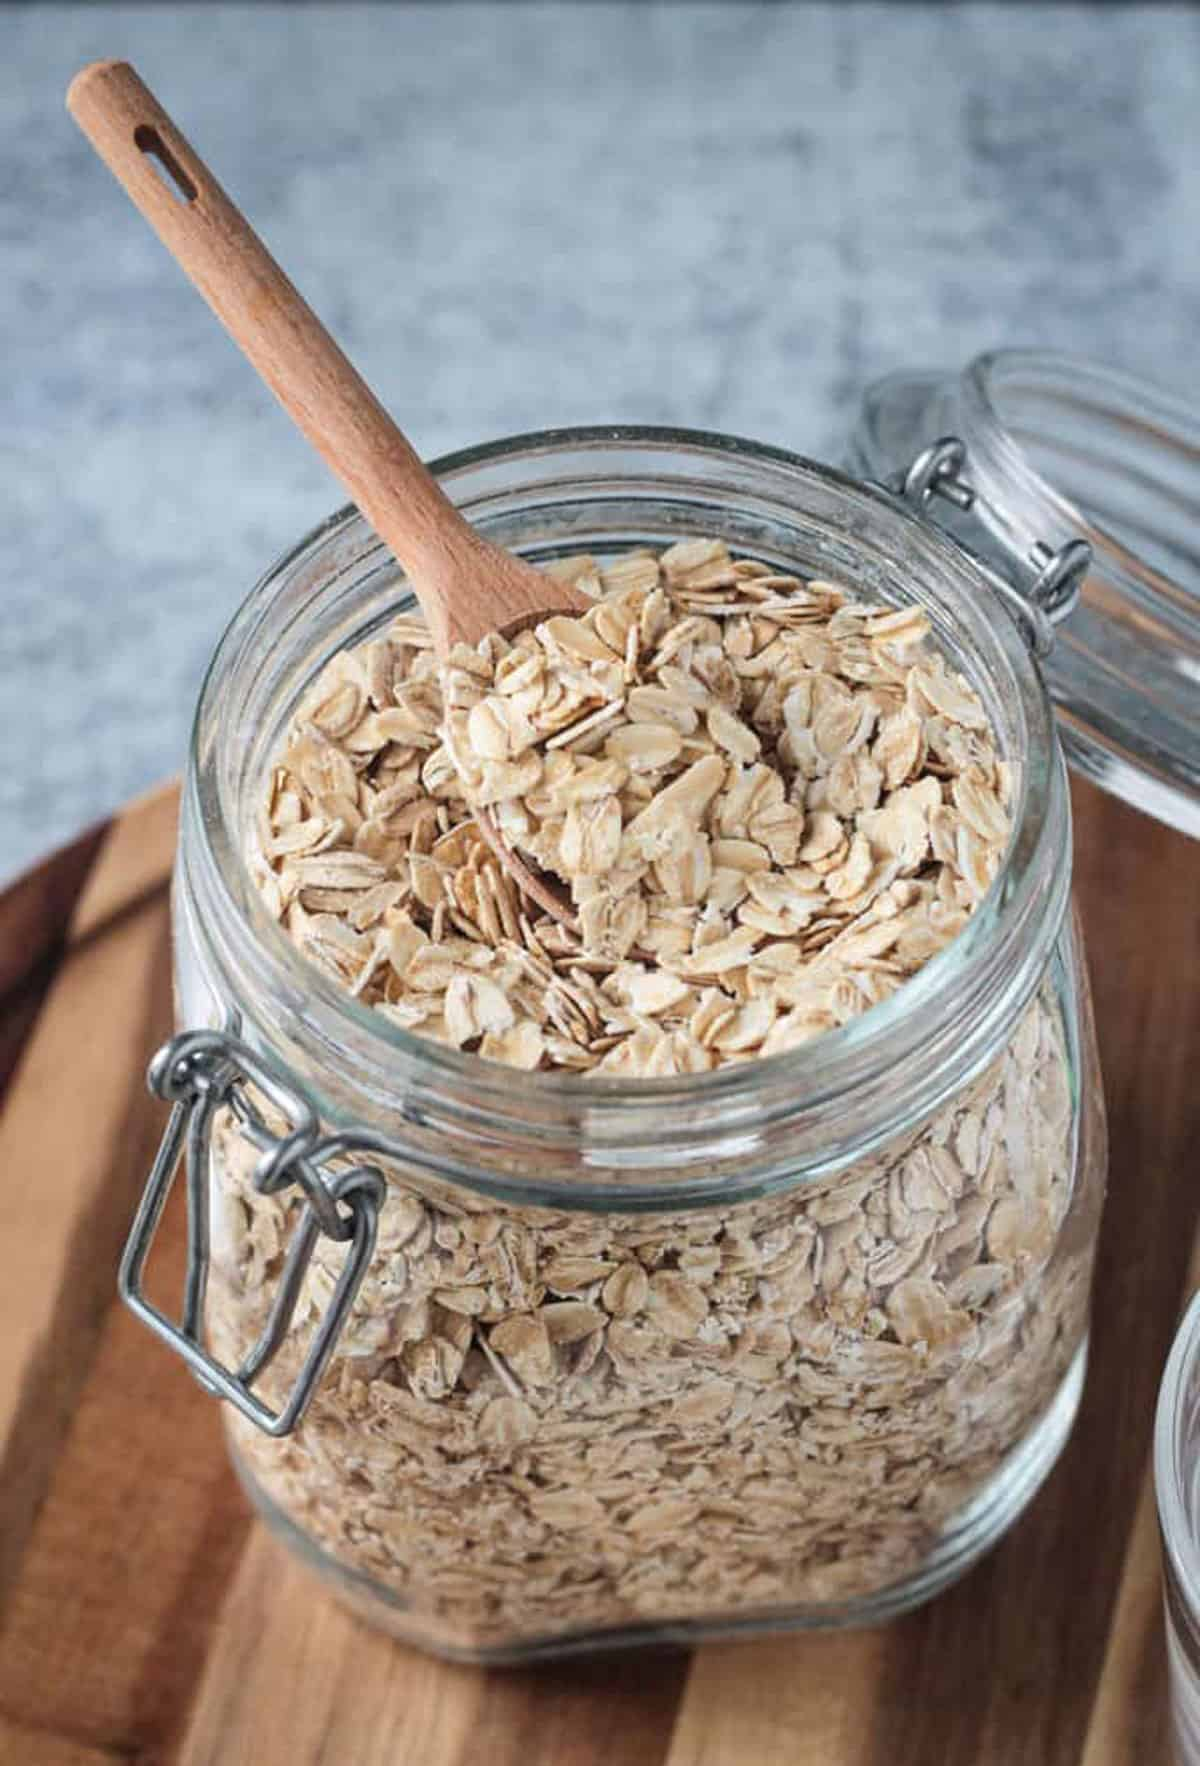 Raw rolled oats in an open glass jar with a wooden spoon.